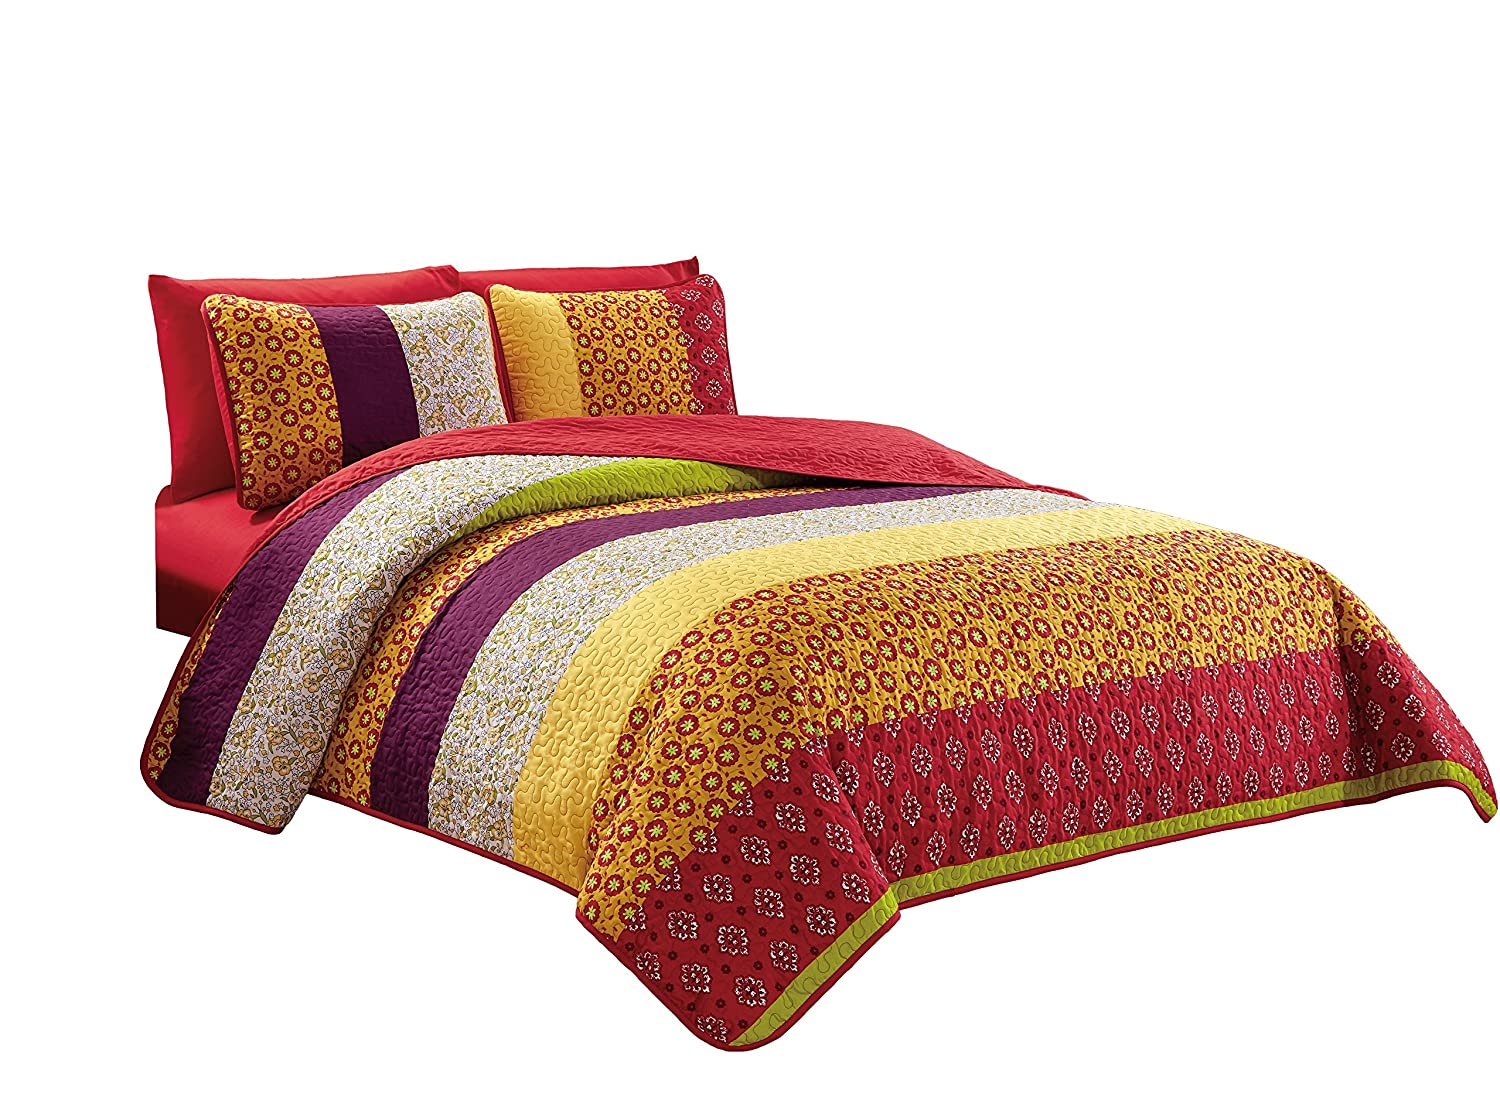 Chezmoi Collection Ivan 6-Piece Paisley Medallion Striped Bedspread Coverlet Set with Fitted Sheet Queen Size